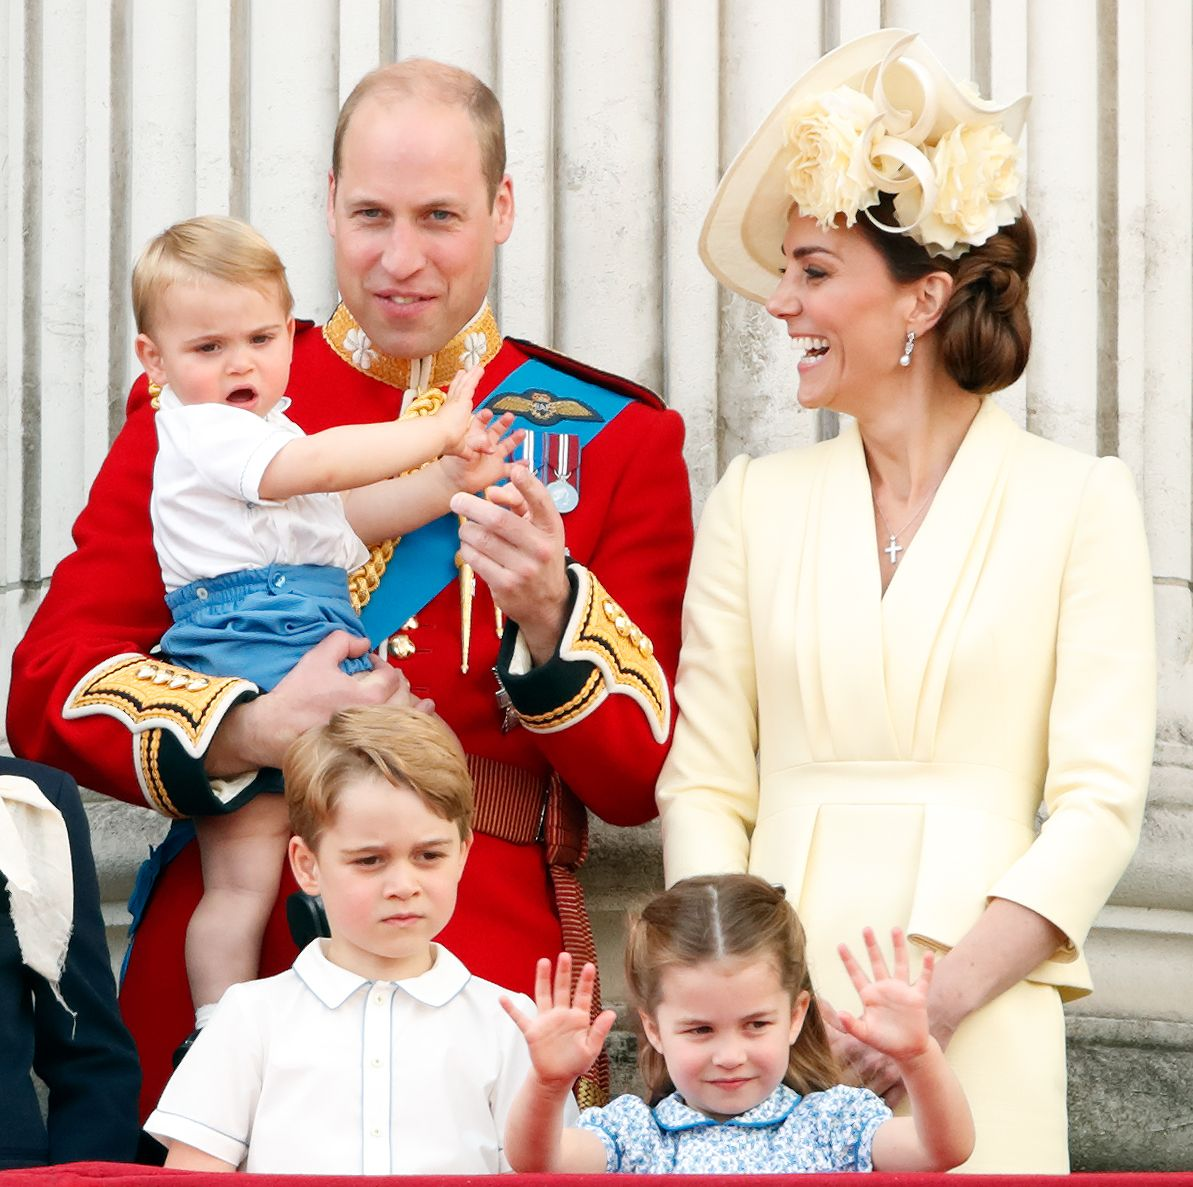 Prince William and Kate Middleton Share Never-Before-Seen Photo of Their Kids for Father's Day